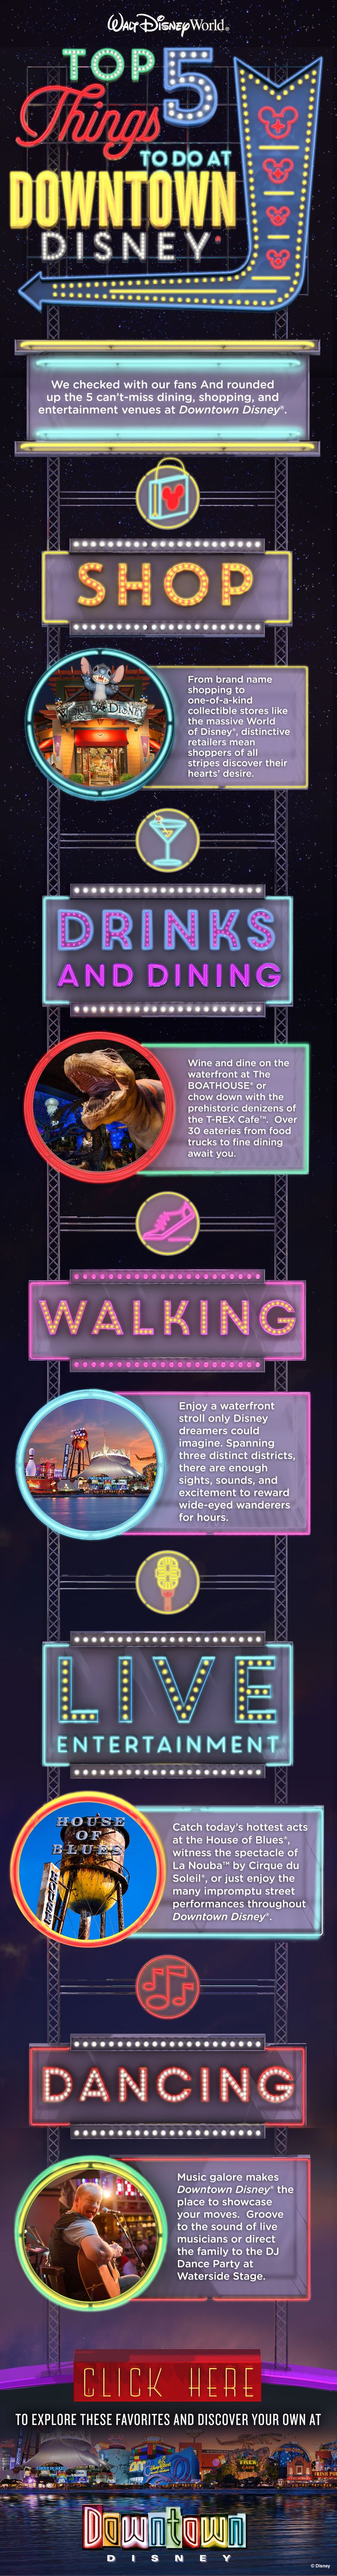 From shopping at World of Disney to dancing and live music at House of Blues and everything in between, check out the top 5 things to do at Downtown Disney as chosen by our Walt Disney World fans!